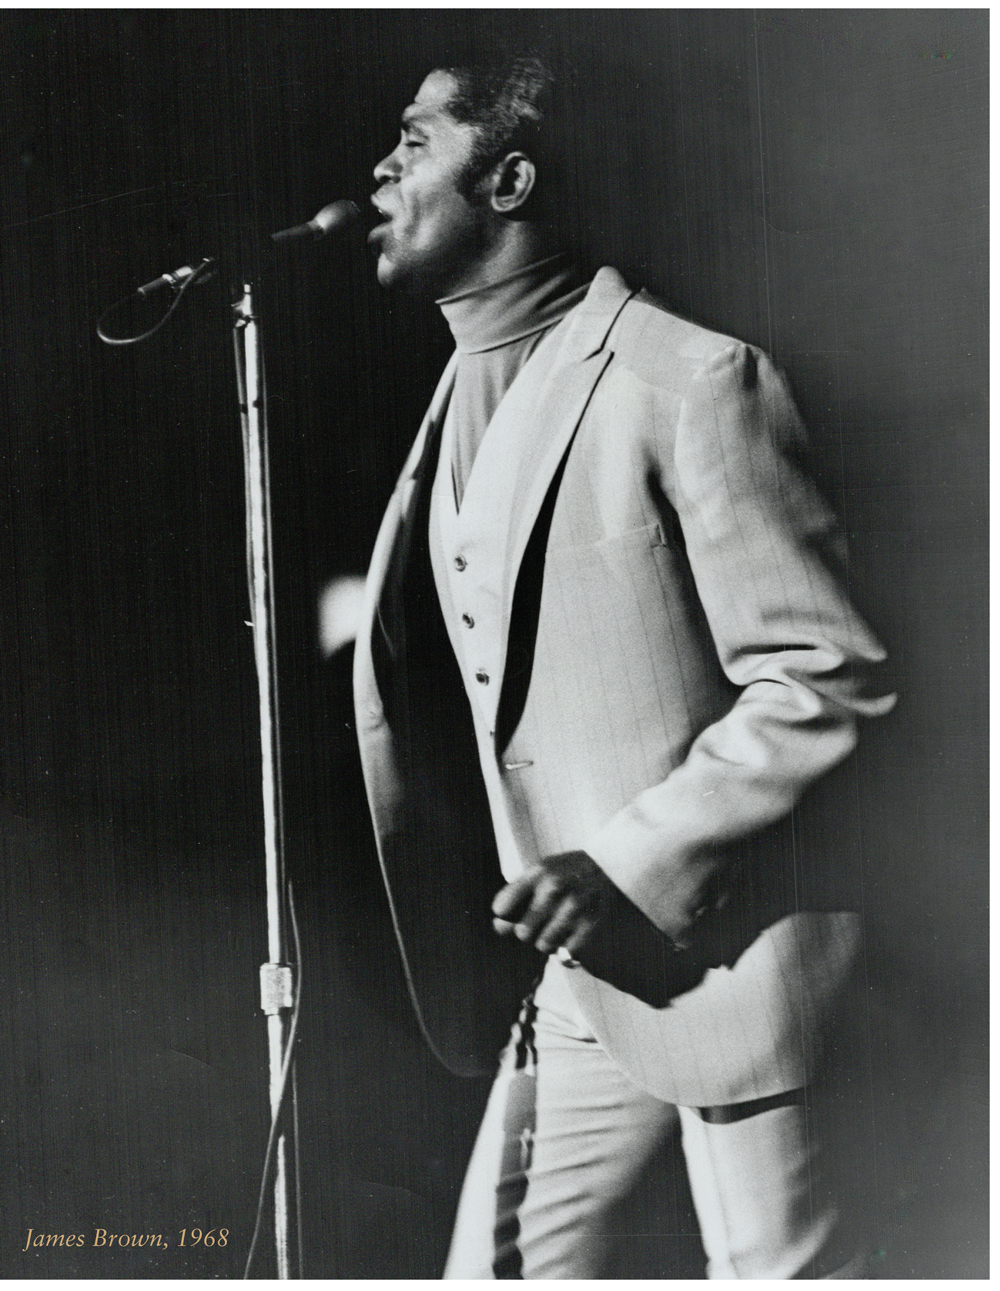 BMM YOUNG JAMES BROWN